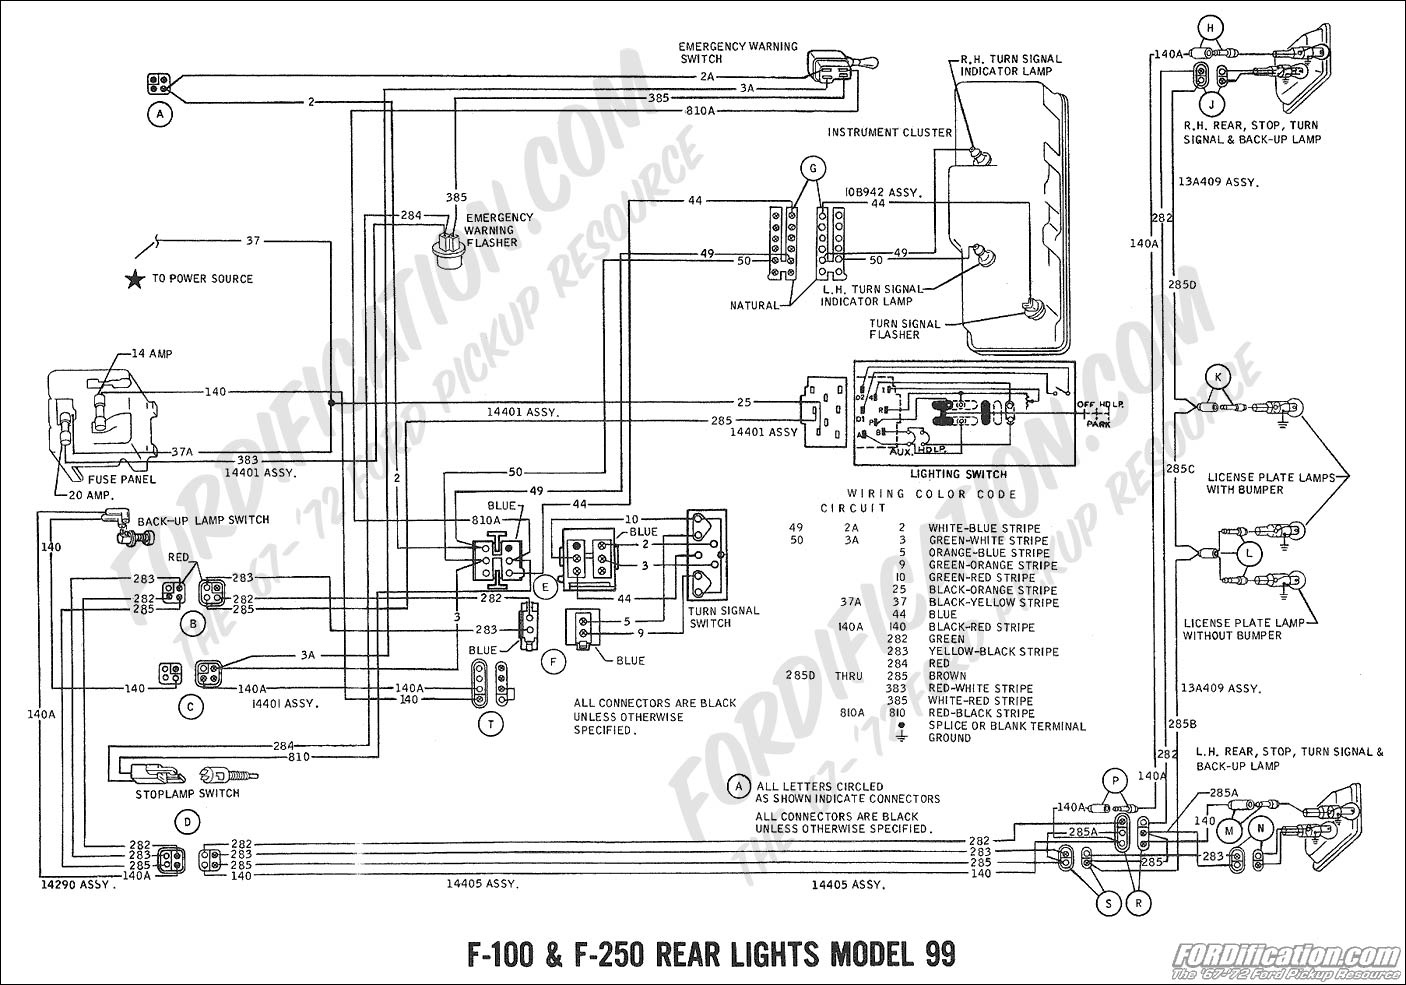 1999 ford f250 headlight wiring diagram 2010 chevy equinox brake for 1969 f100 get free image about